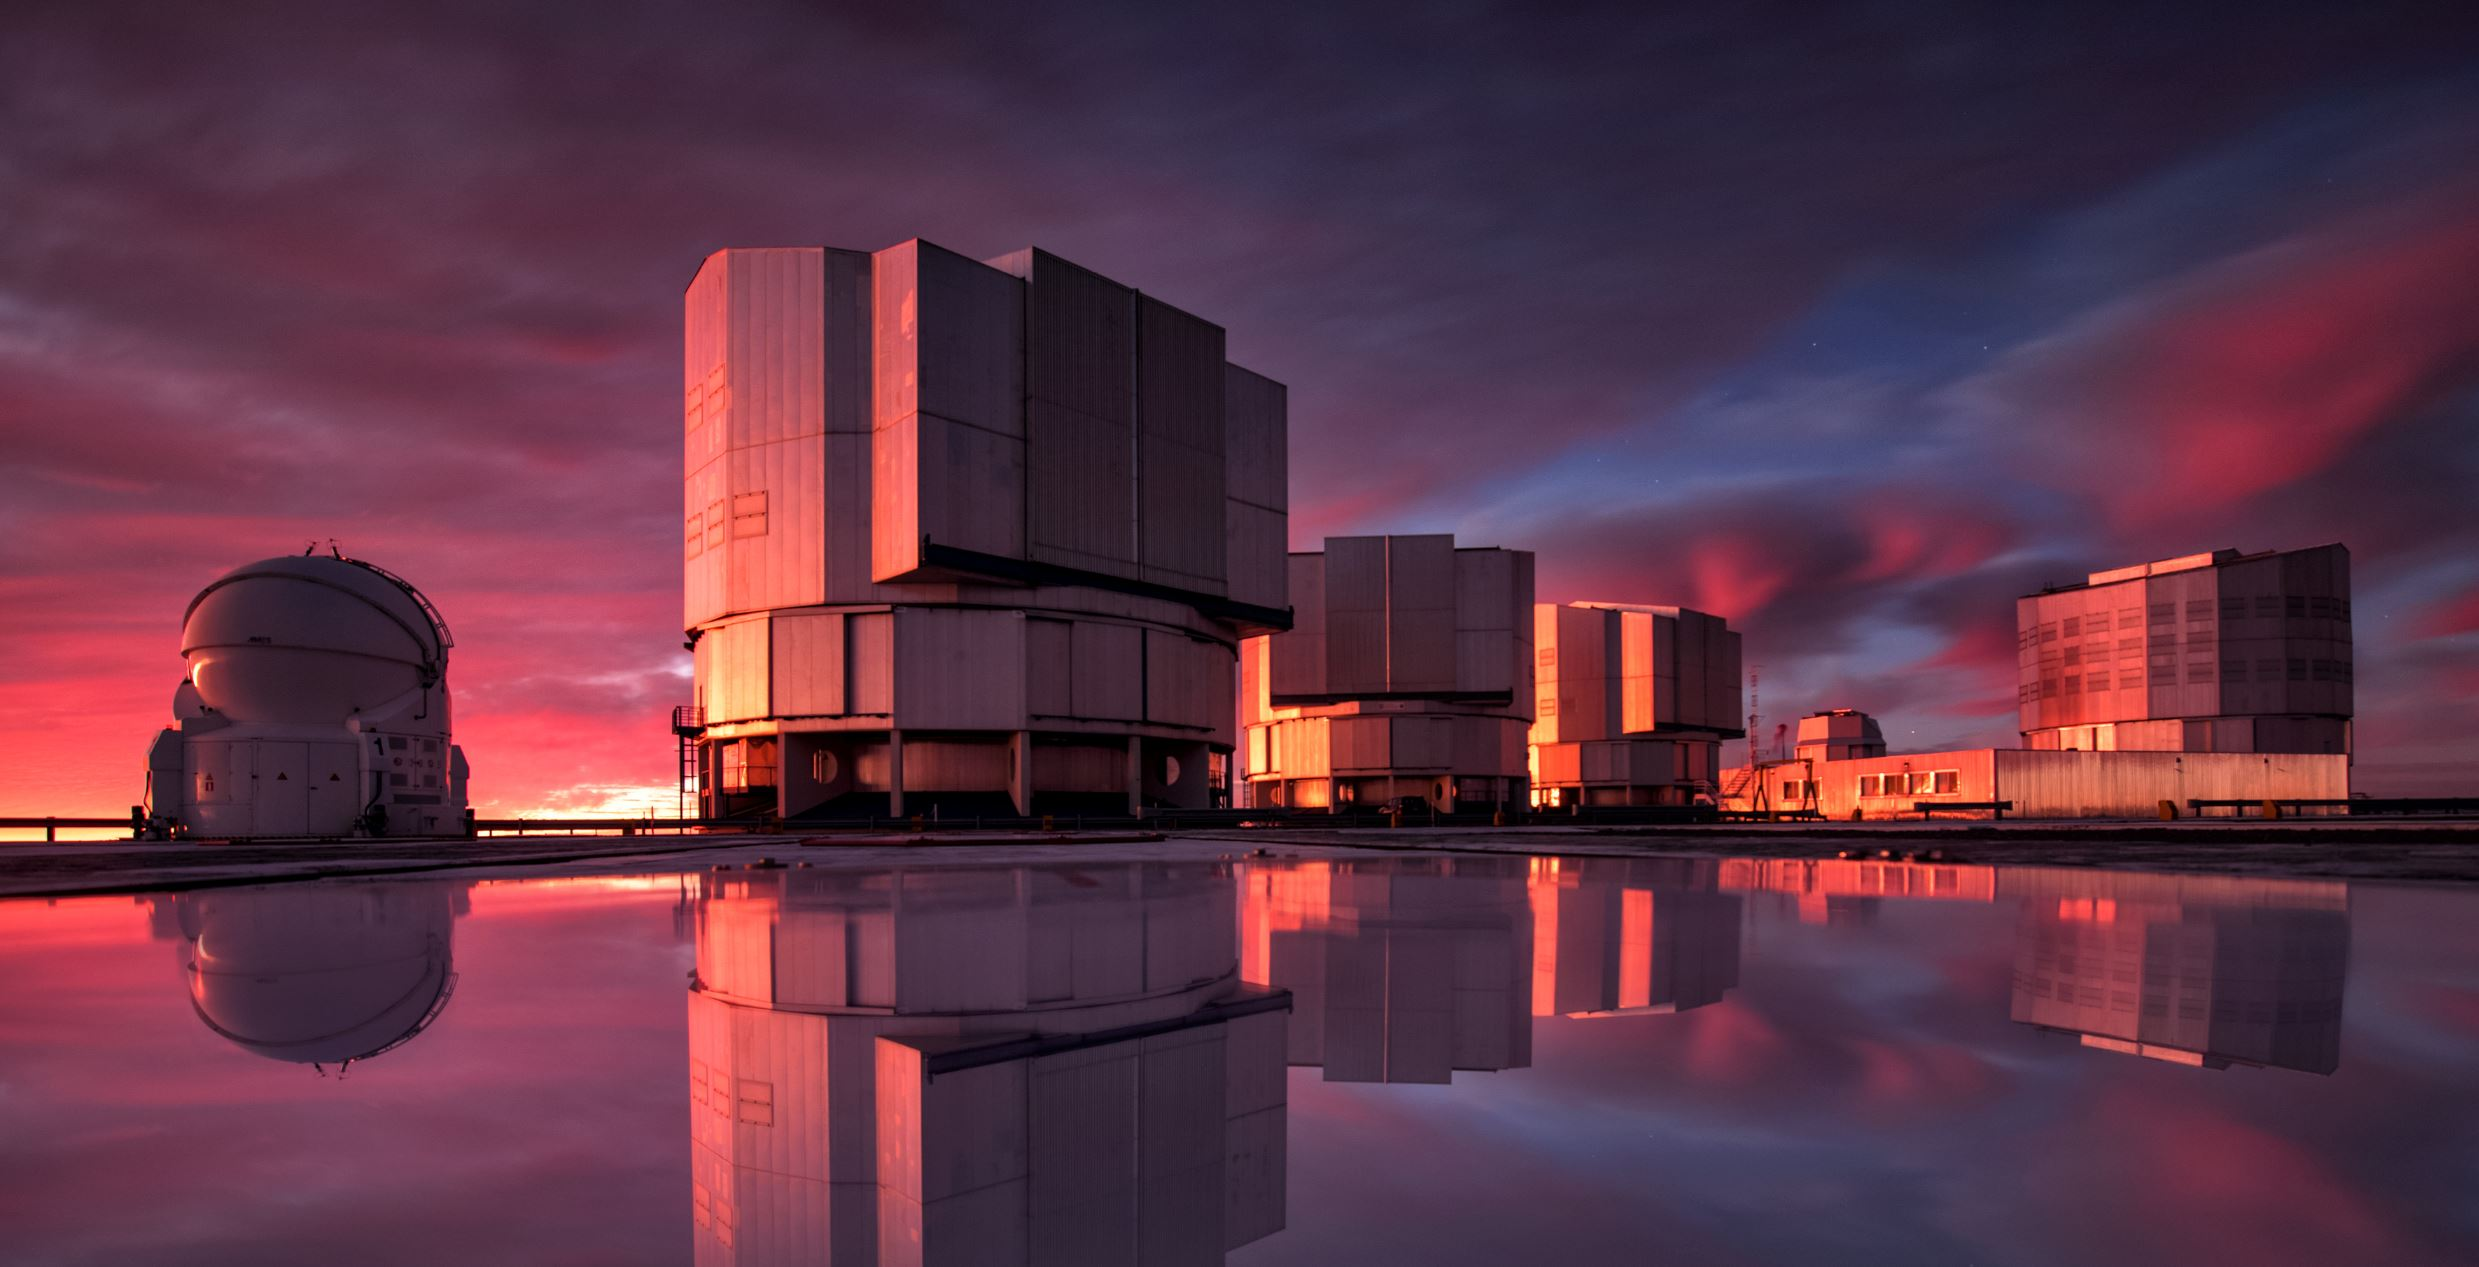 Image Credit:  A. Ghizzi Panizza /ESO